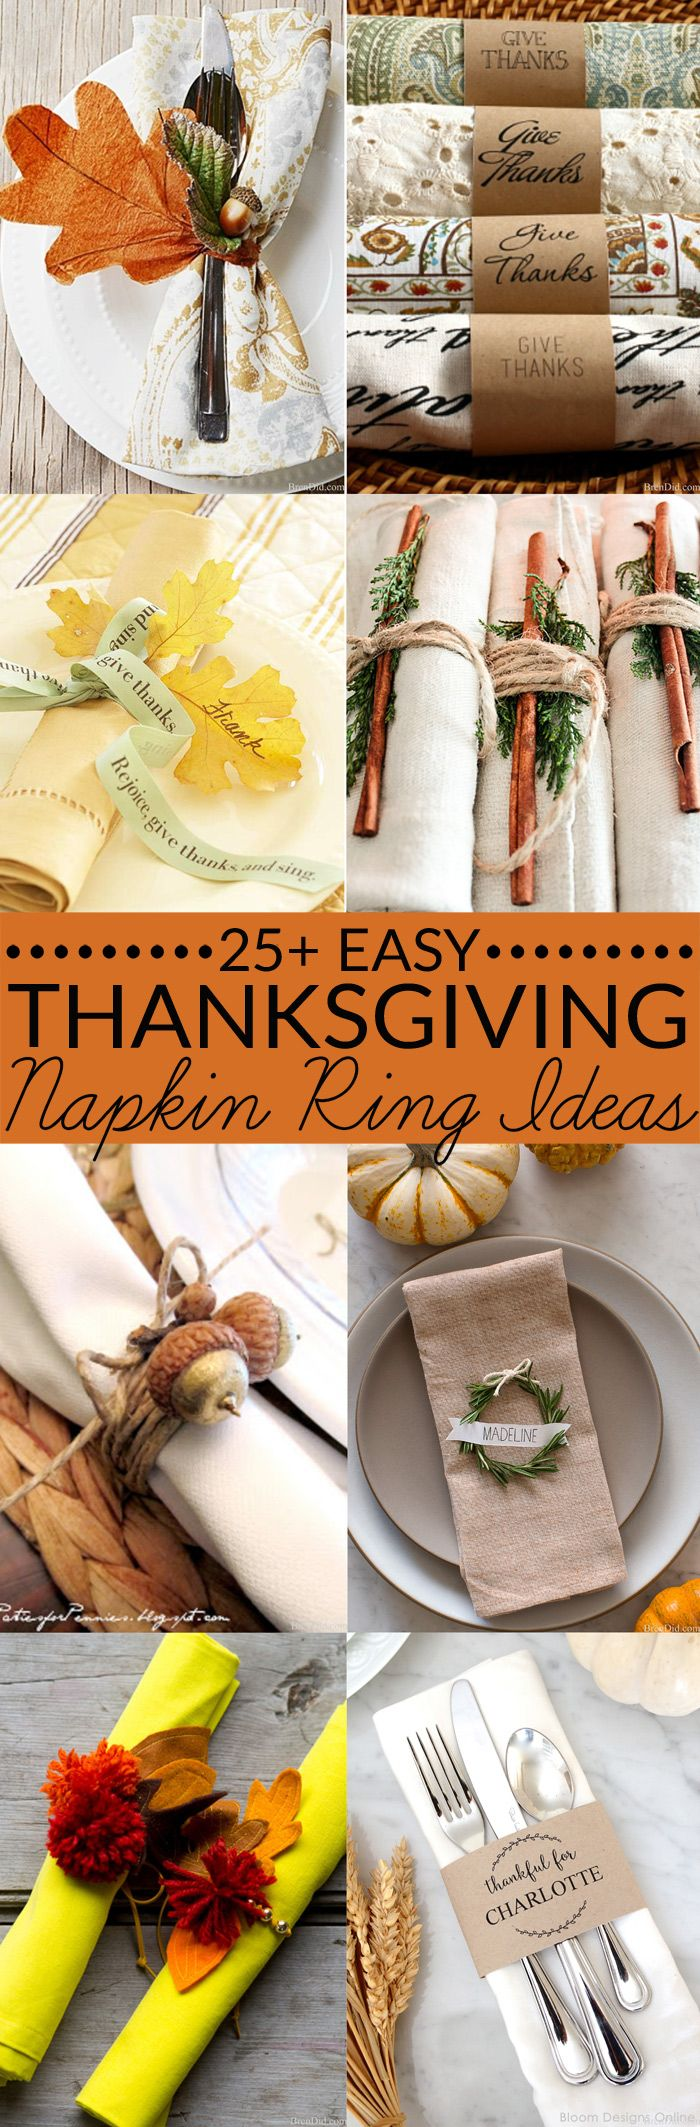 These adorable DIY napkin rings will inspire you to make your own Thanksgiving napkin rings this Thanksgiving. These easy projects can all be completed before the big feast! Free printable, Thanksgiving decor, Thanksgiving table ideas.